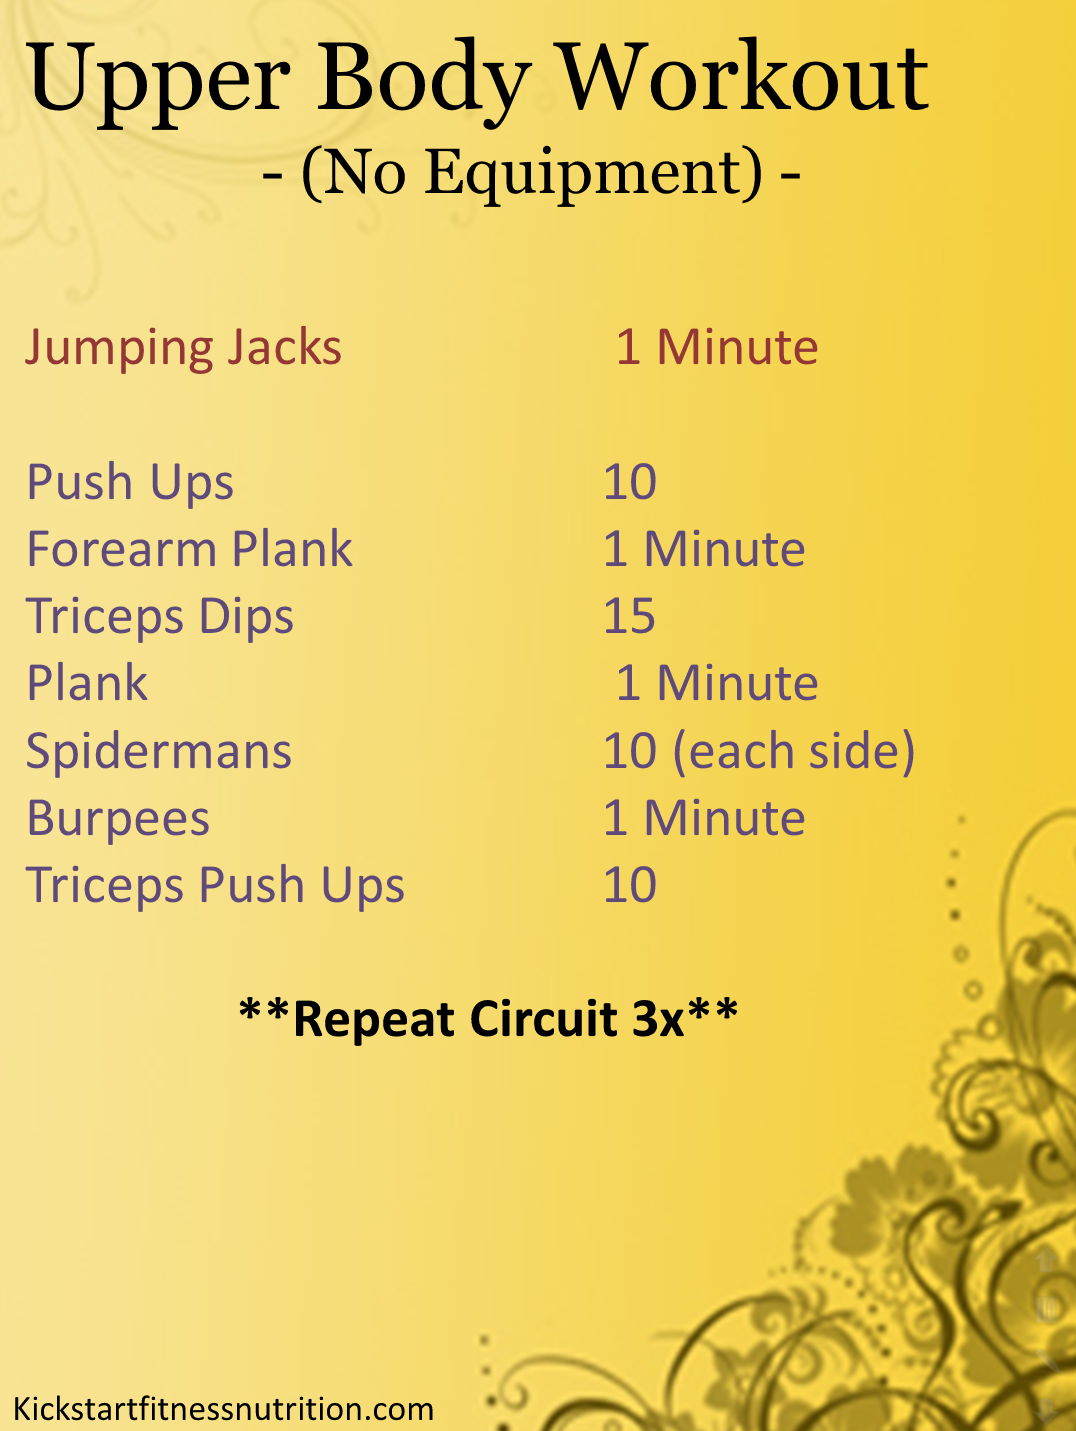 Kama Fitness And Nutrition Upper Body Workout No Equipment